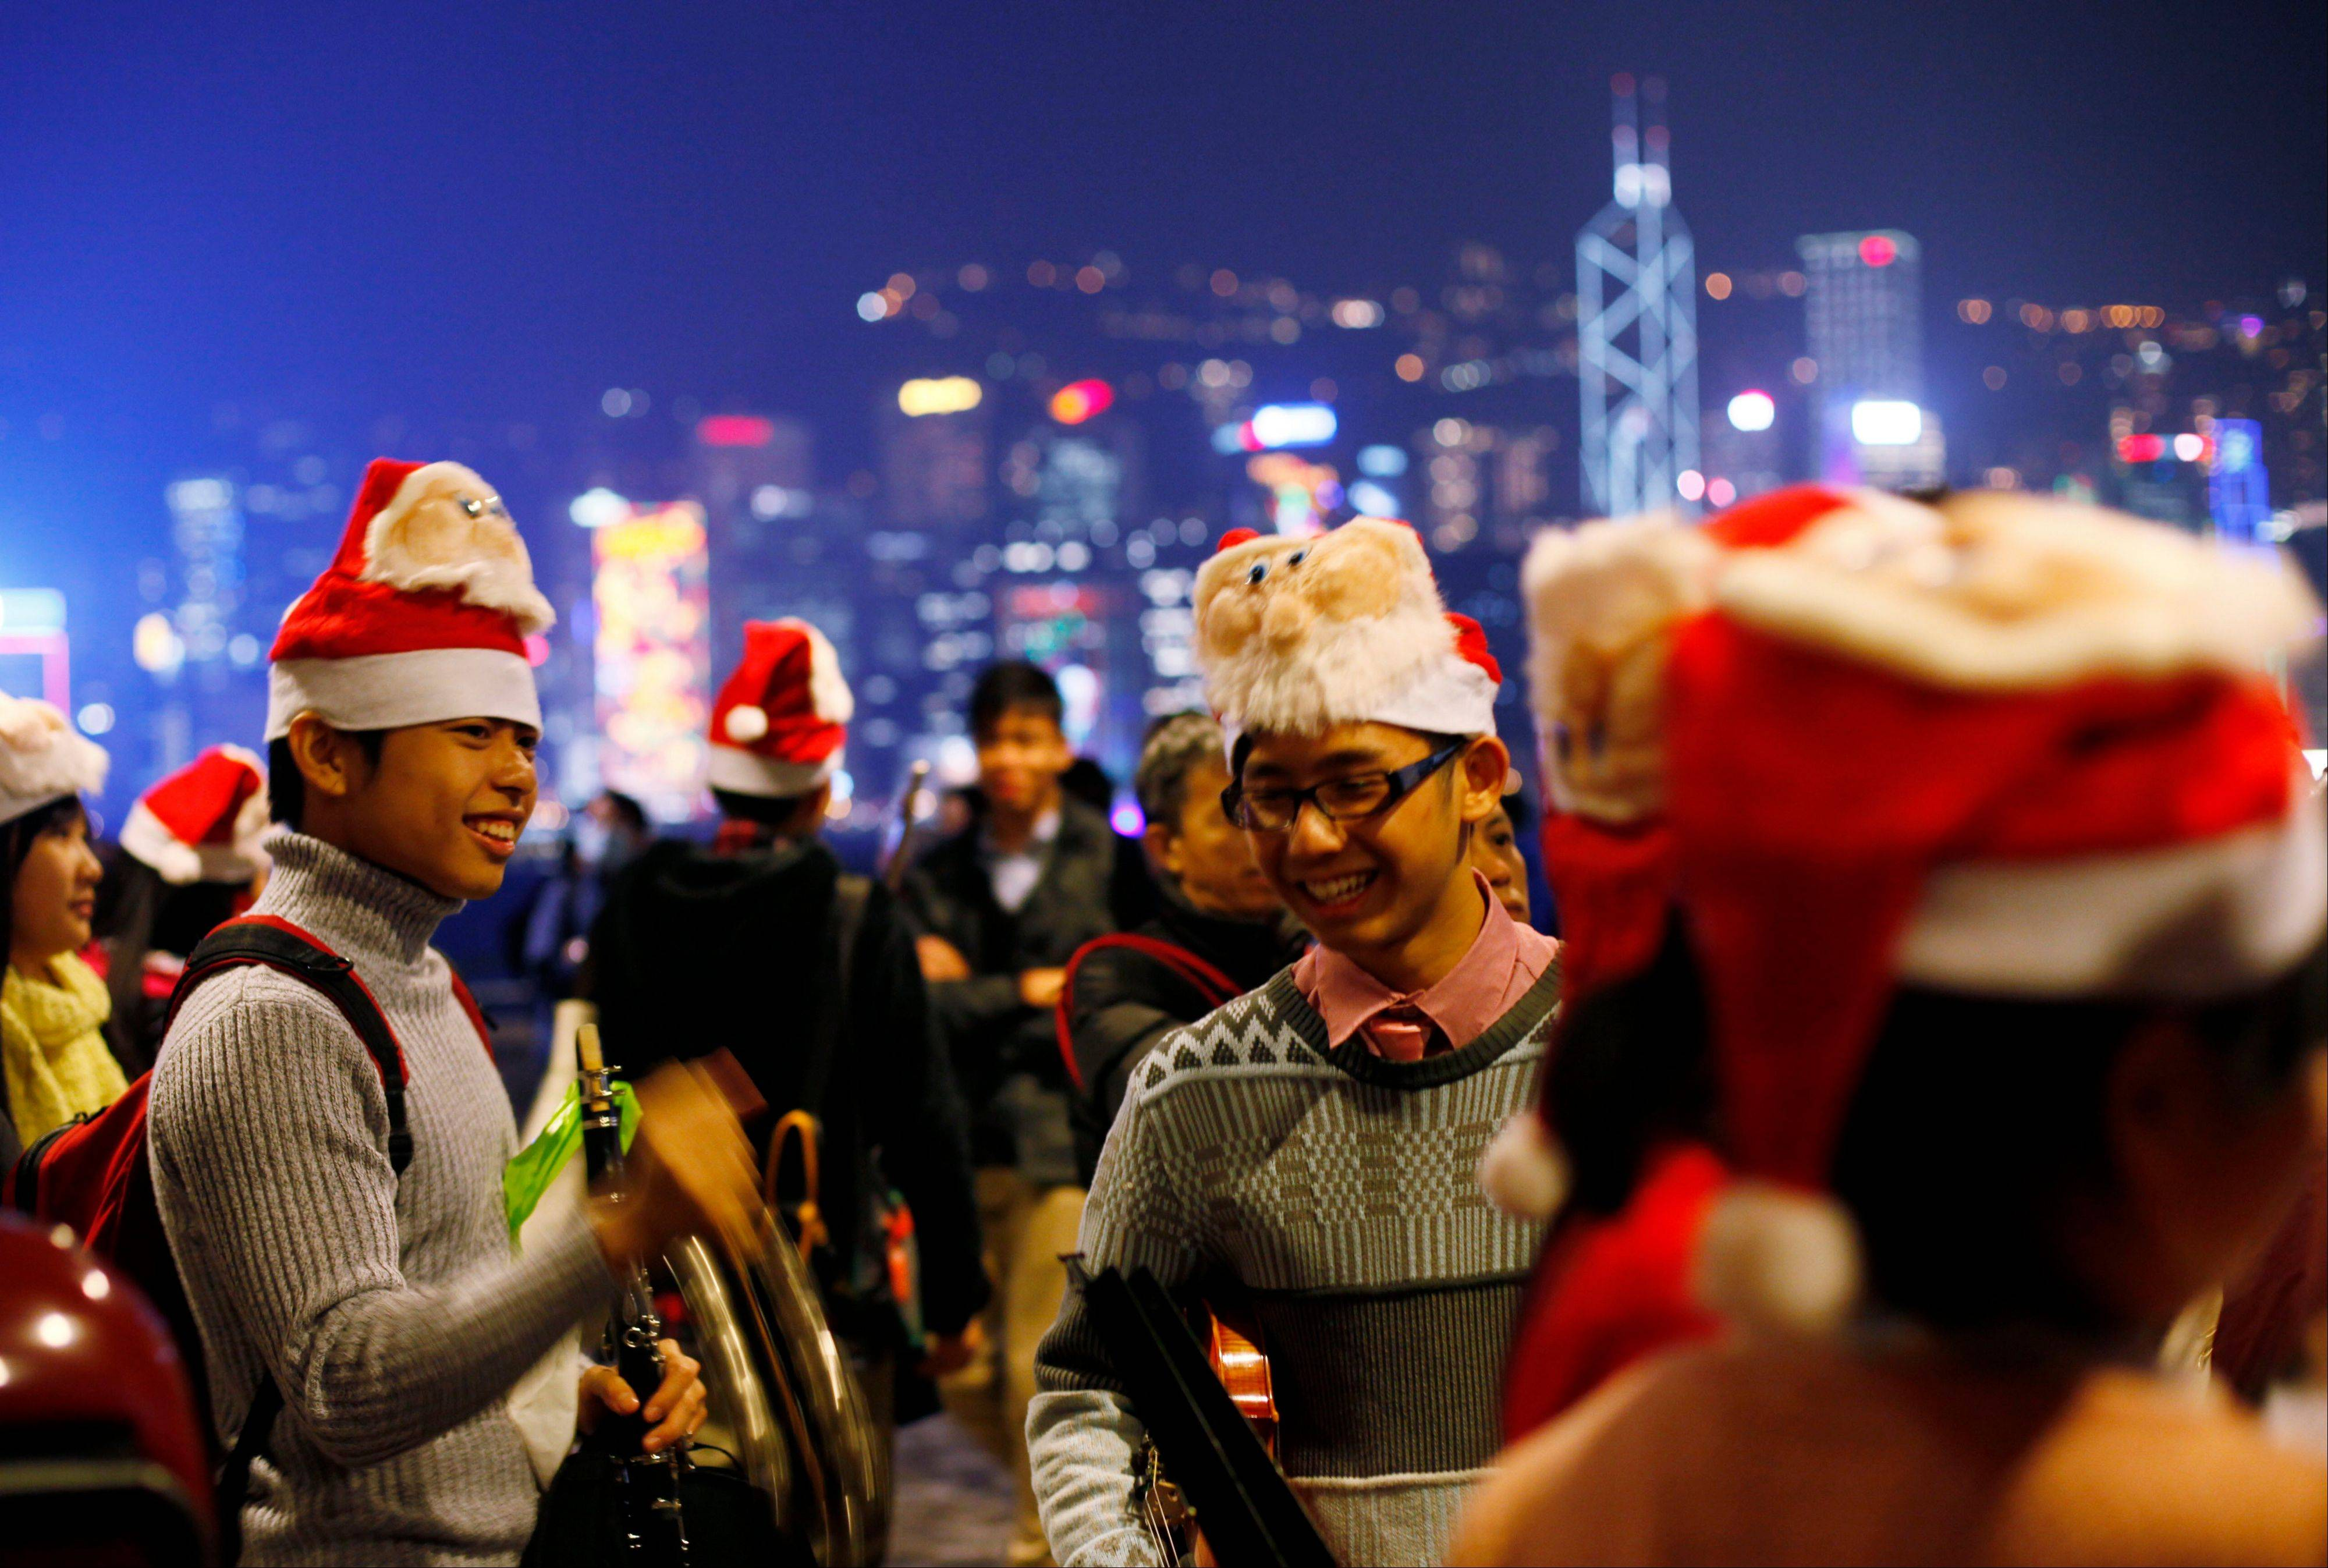 Students play Christmas songs during Christmas Eve along the shore of Victoria Harbour in Hong Kong Monday Dec. 24, 2012. Christmas is a public holiday and recognized as commercial event rather than religious event in Hong Kong.